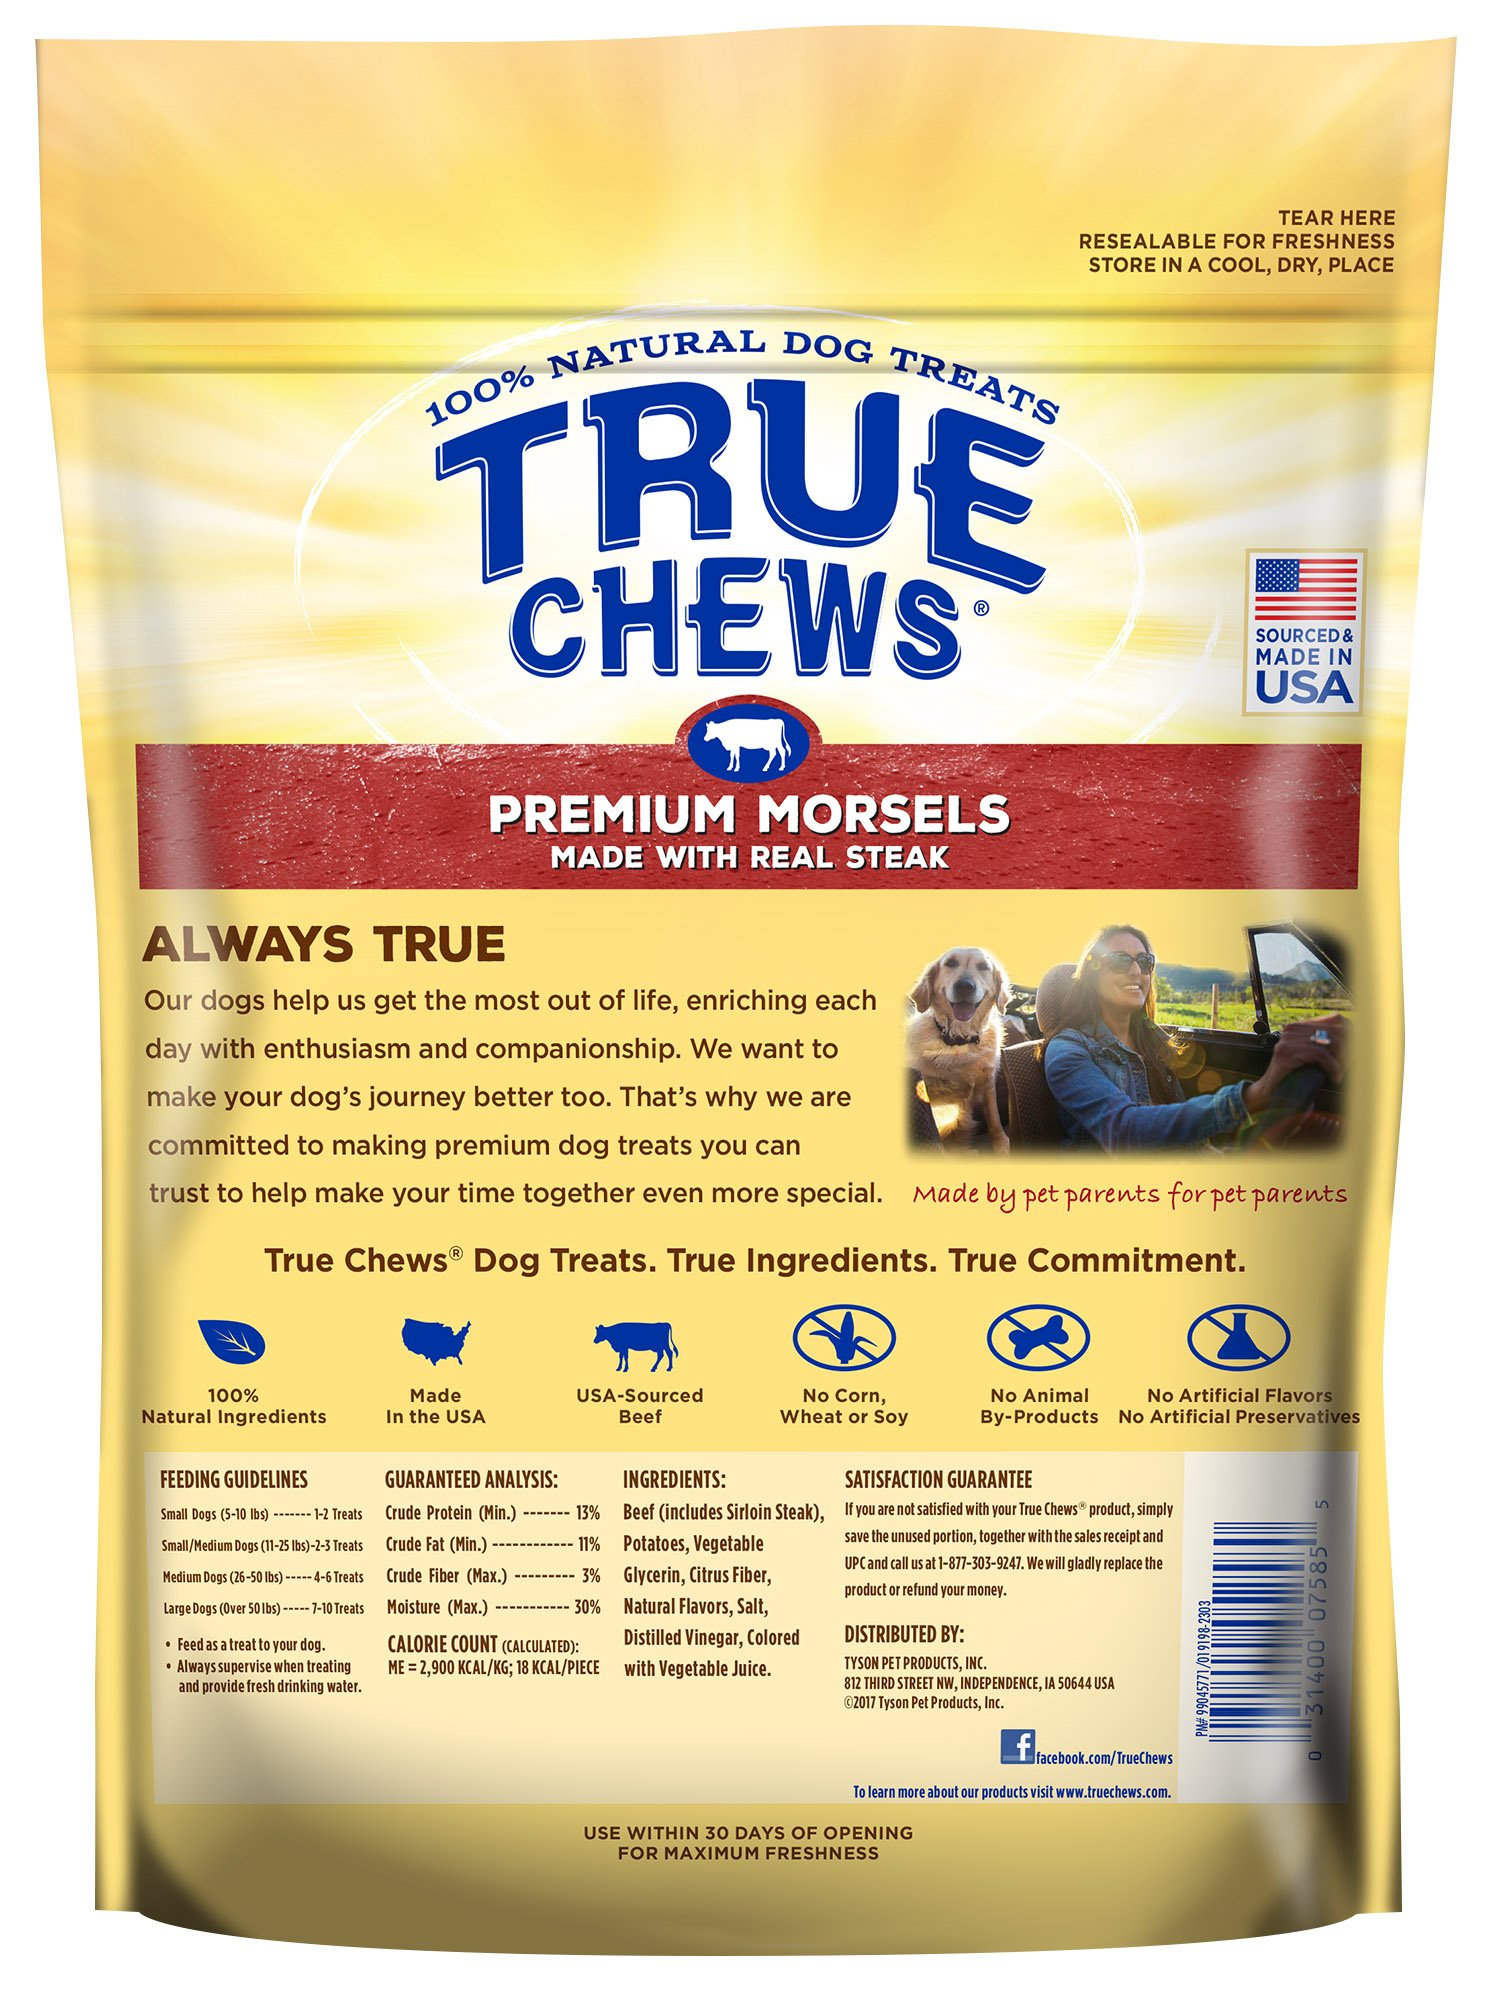 True Chews Premium Morsels Made with Real Steak 10 oz